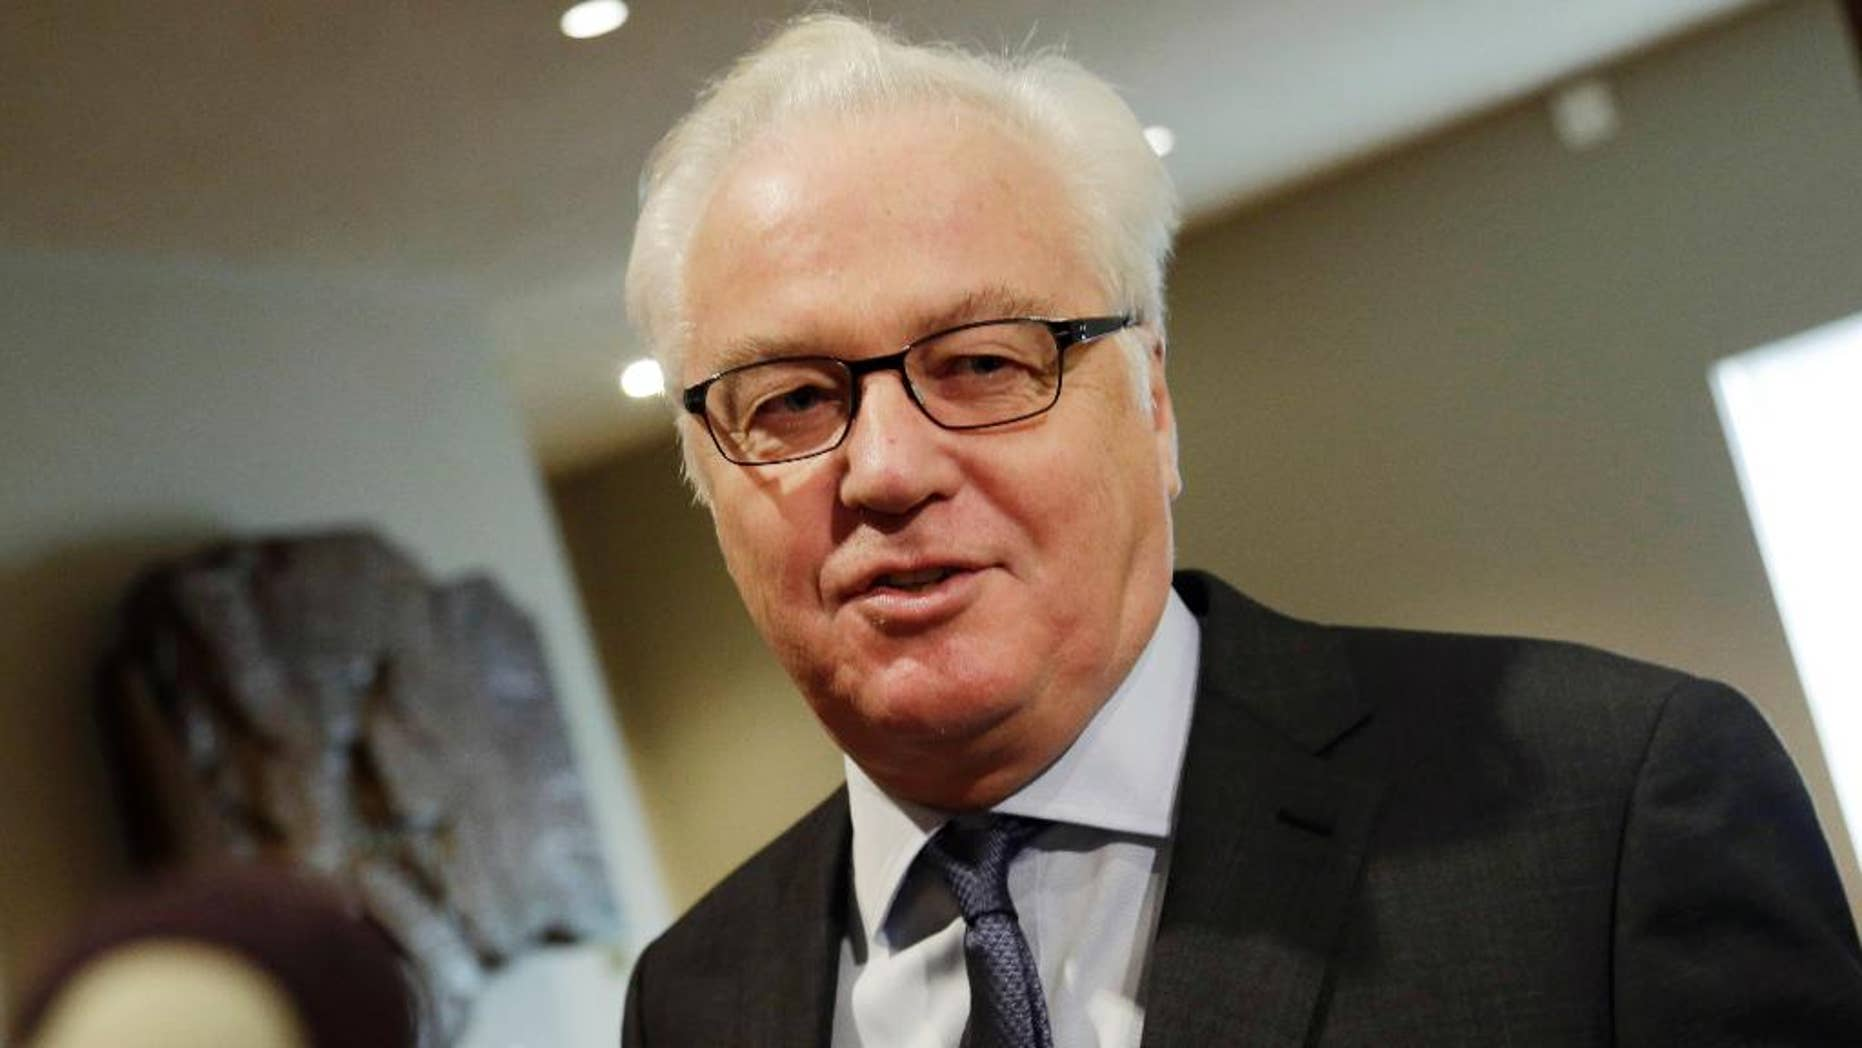 """FILE- In this Feb. 7, 2016, file photo, Russia's United Nations Ambassador Vitaly Churkin makes comments to the media prior to a Security Council meeting at U.N. headquarters. Churkin told reporters Wednesday, April 27, that the two hardline Islamic groups — Jaish al-Islam, or the Army of Islam, and Ahrar al-Sham — aren't observing the cessation of hostilities in Syria """"and are engaged in terrorist activities"""" and therefore should be subject to sanctions. (AP Photo/Mark Lennihan, File)"""